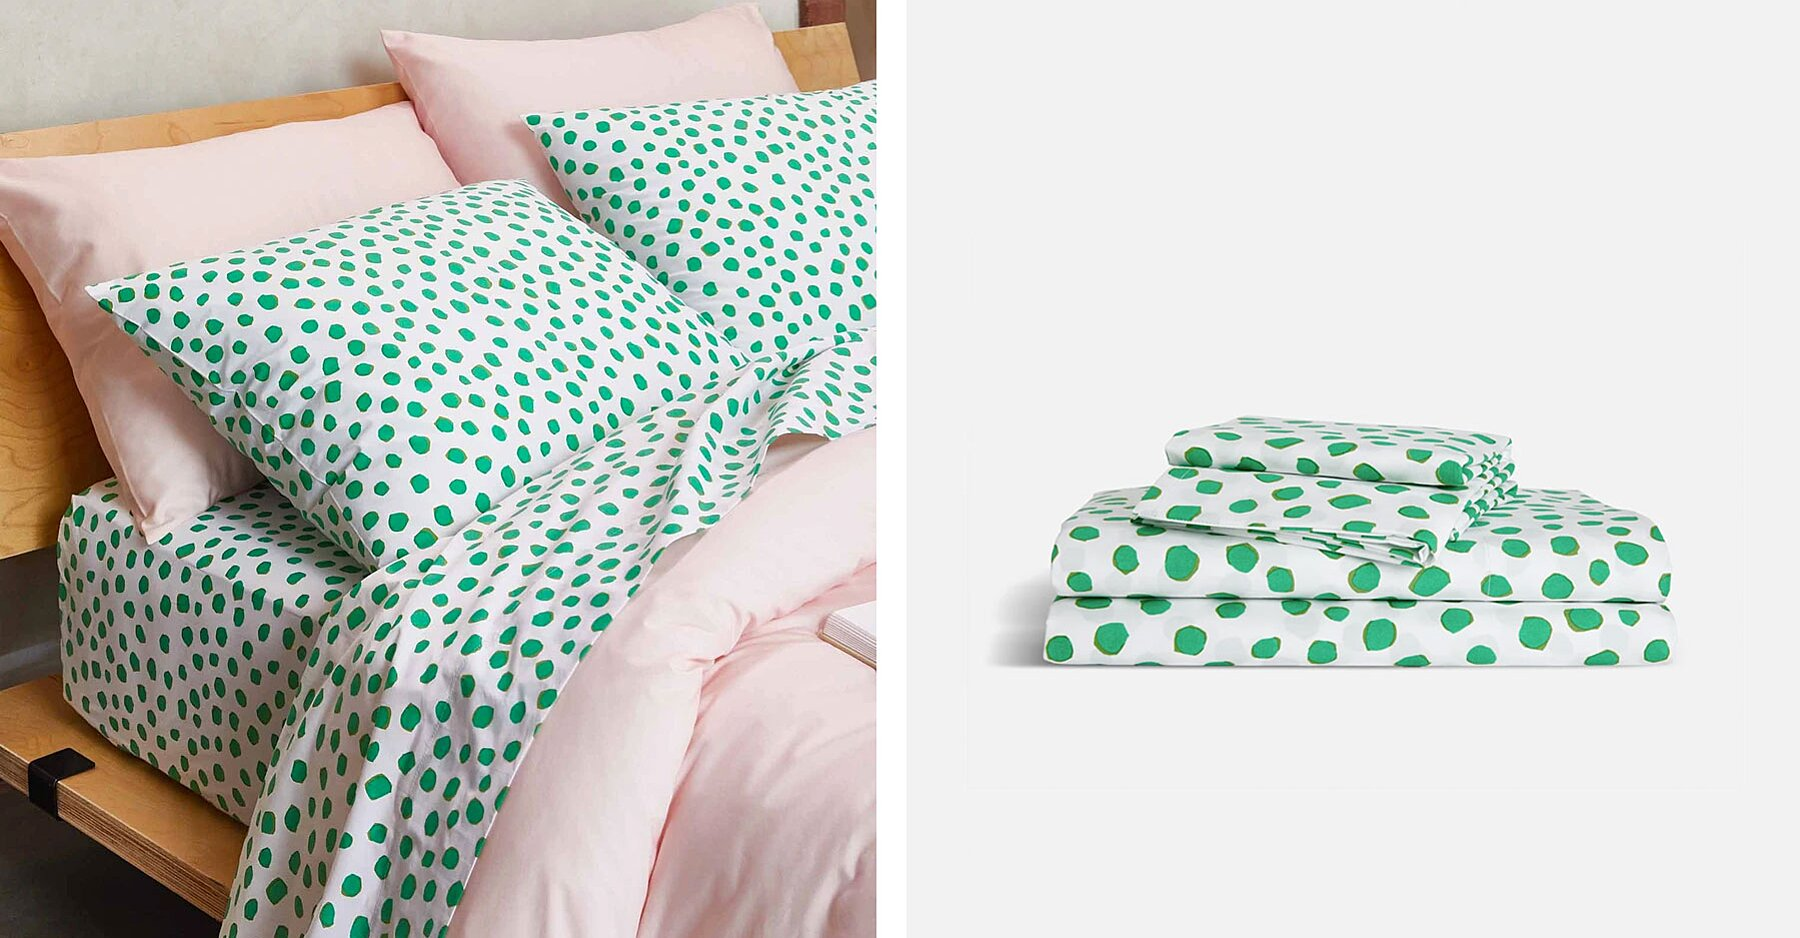 Brooklinen's Latest Bedding Will Add the Perfect Pop of Color to Your Bedroom